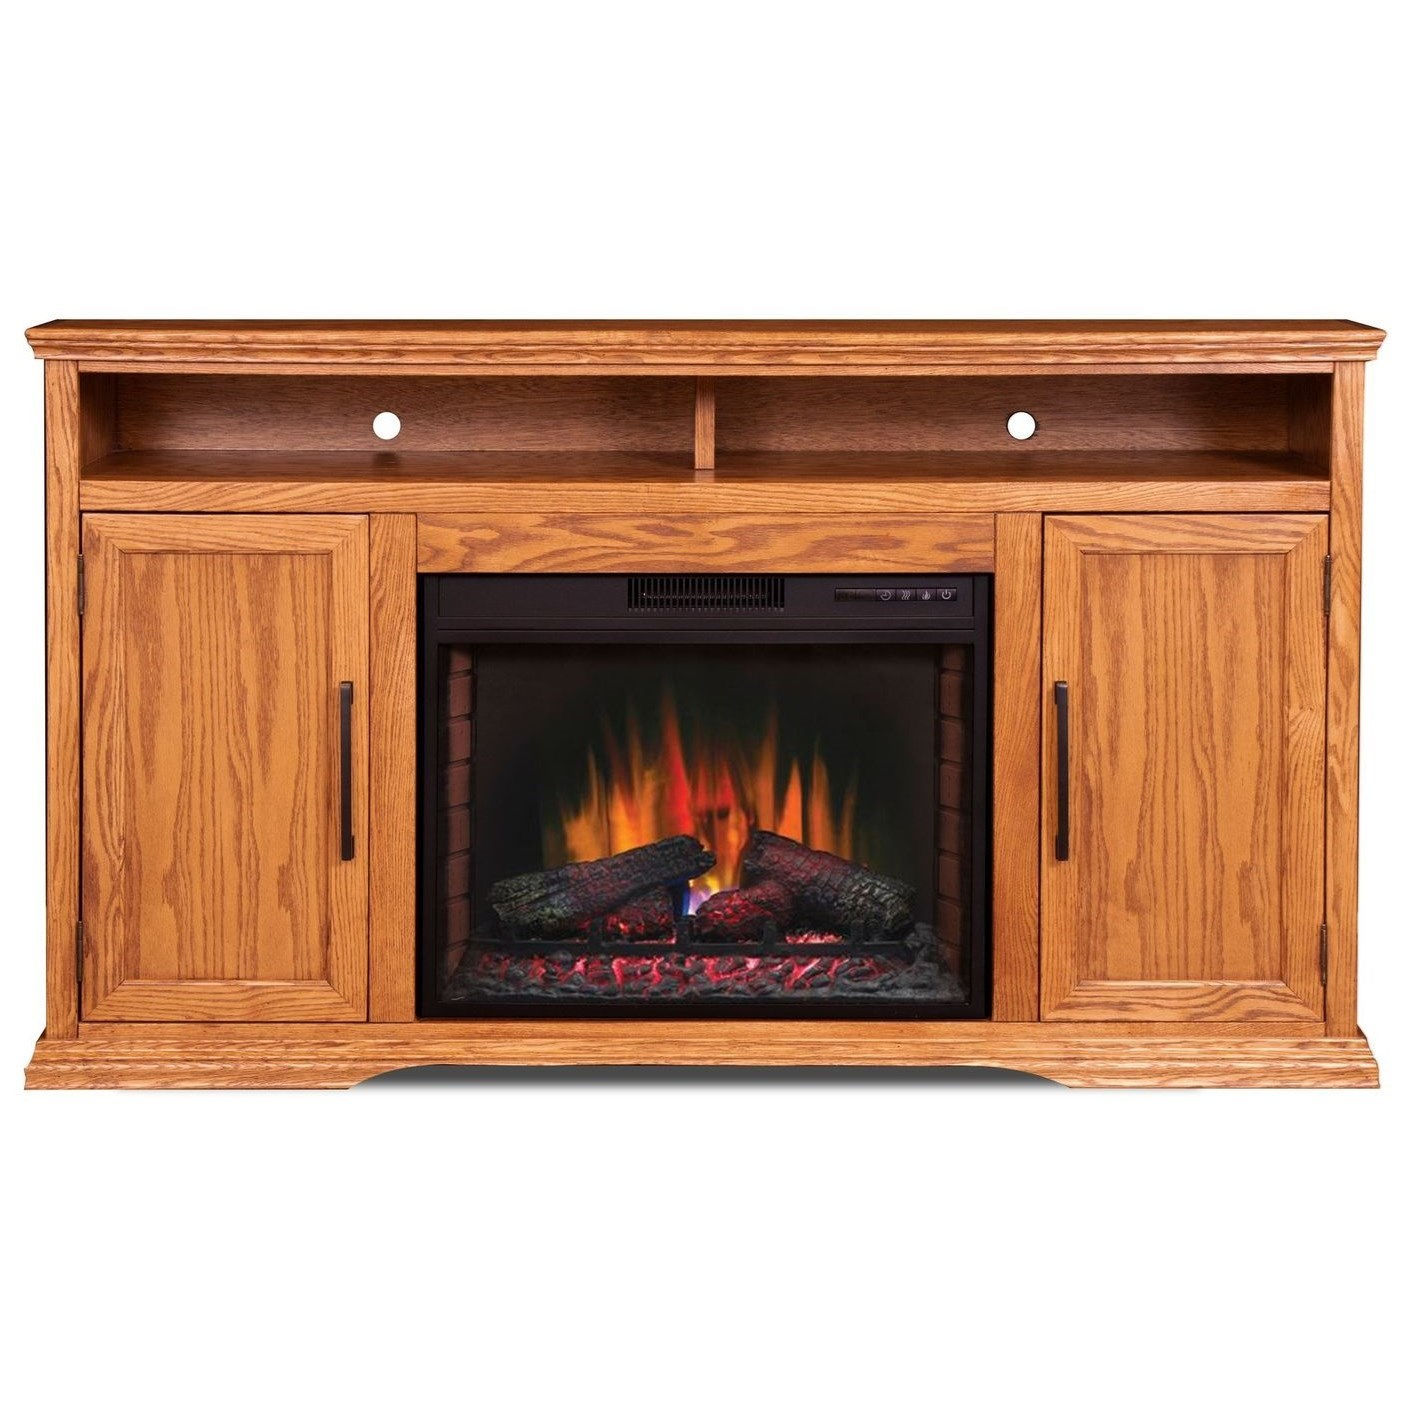 "Colonial Place 66"" Fireplace Console by Legends Furniture at Darvin Furniture"